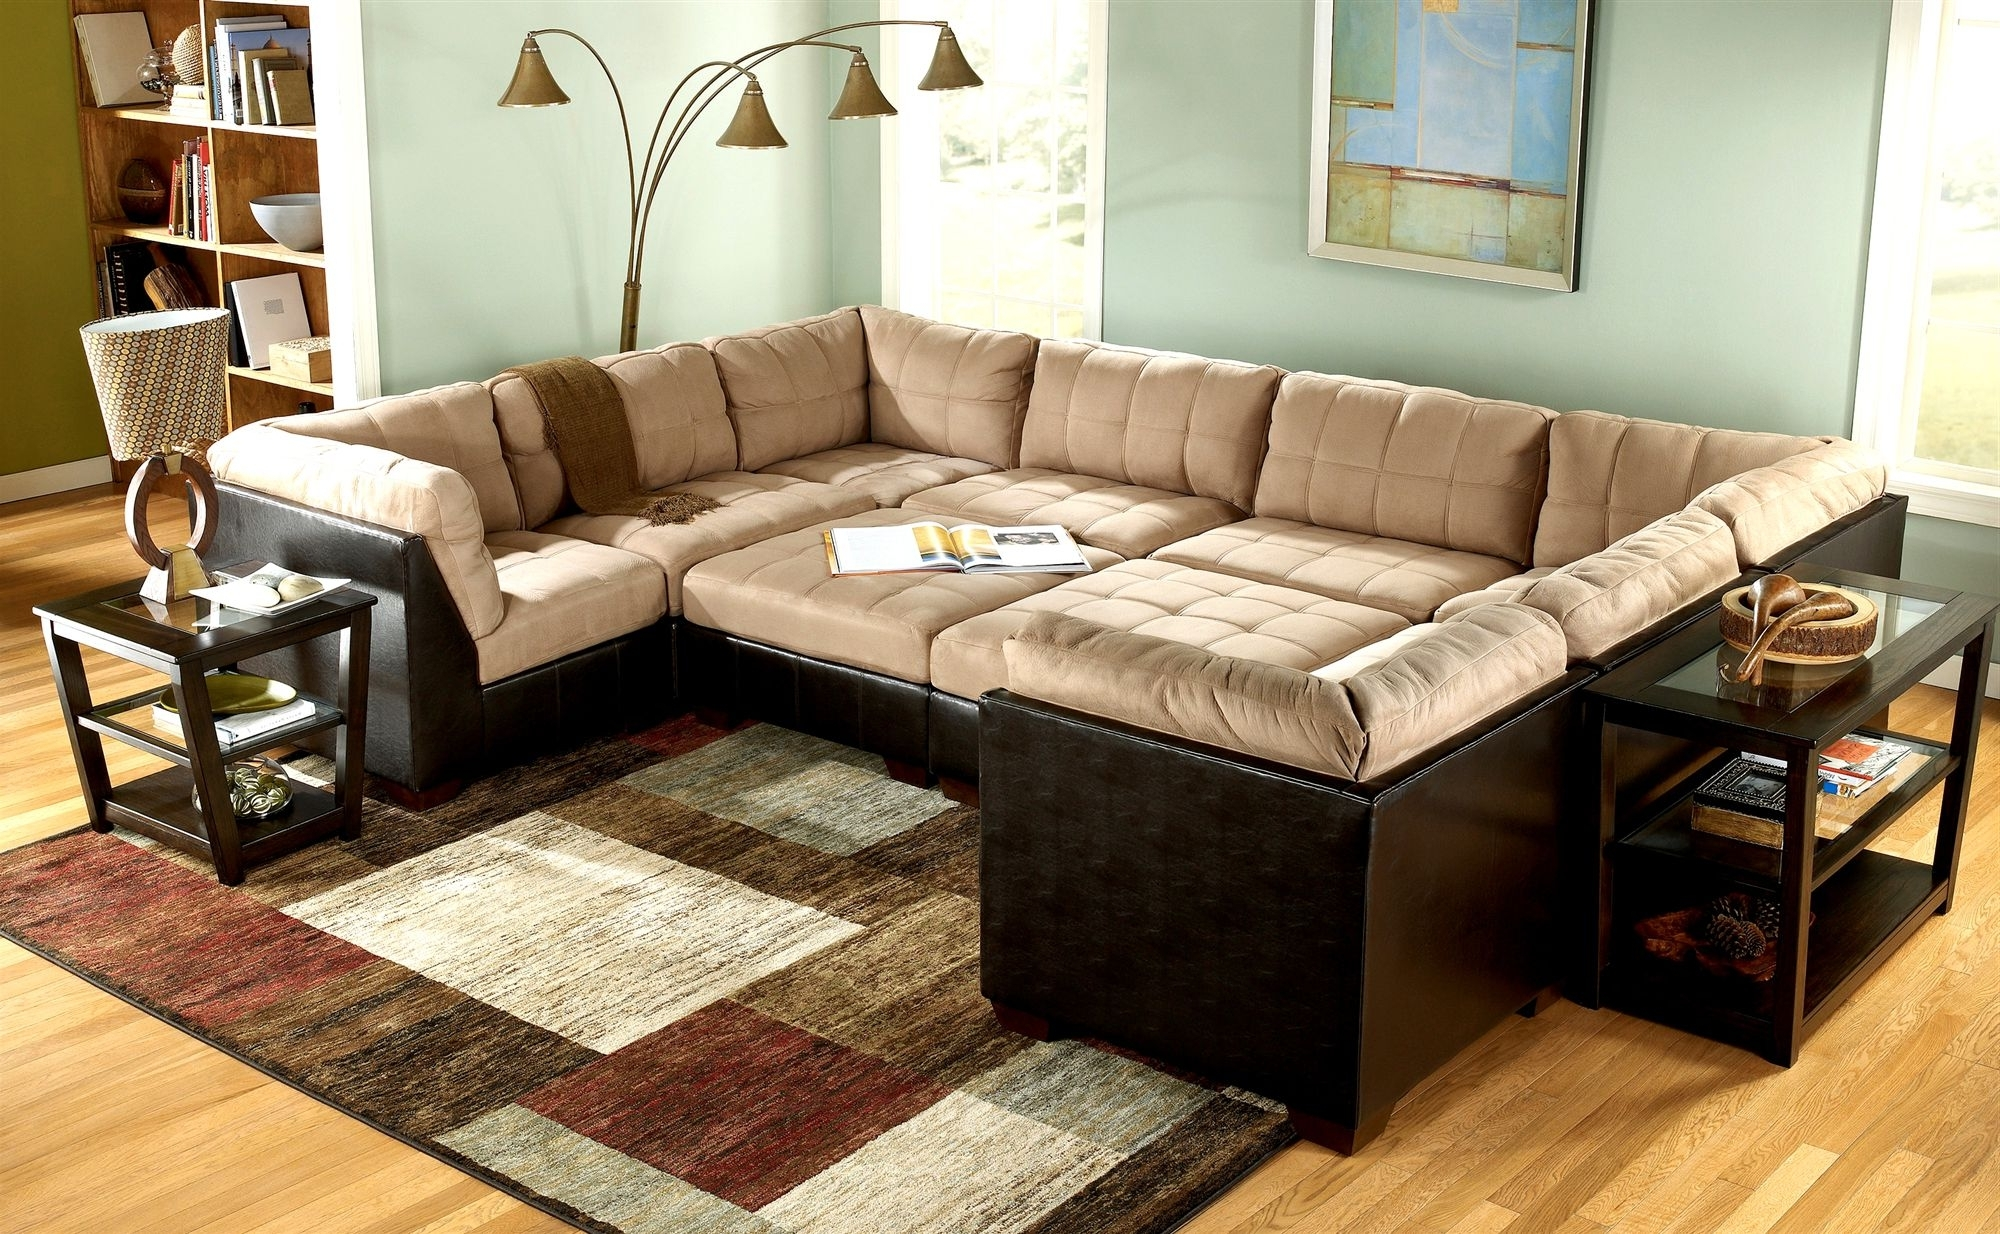 Simple Cheap Sectional Sofas With Ottoman 41 For Your Jennifer With Regard To Preferred Cheap Sectionals With Ottoman (View 17 of 20)